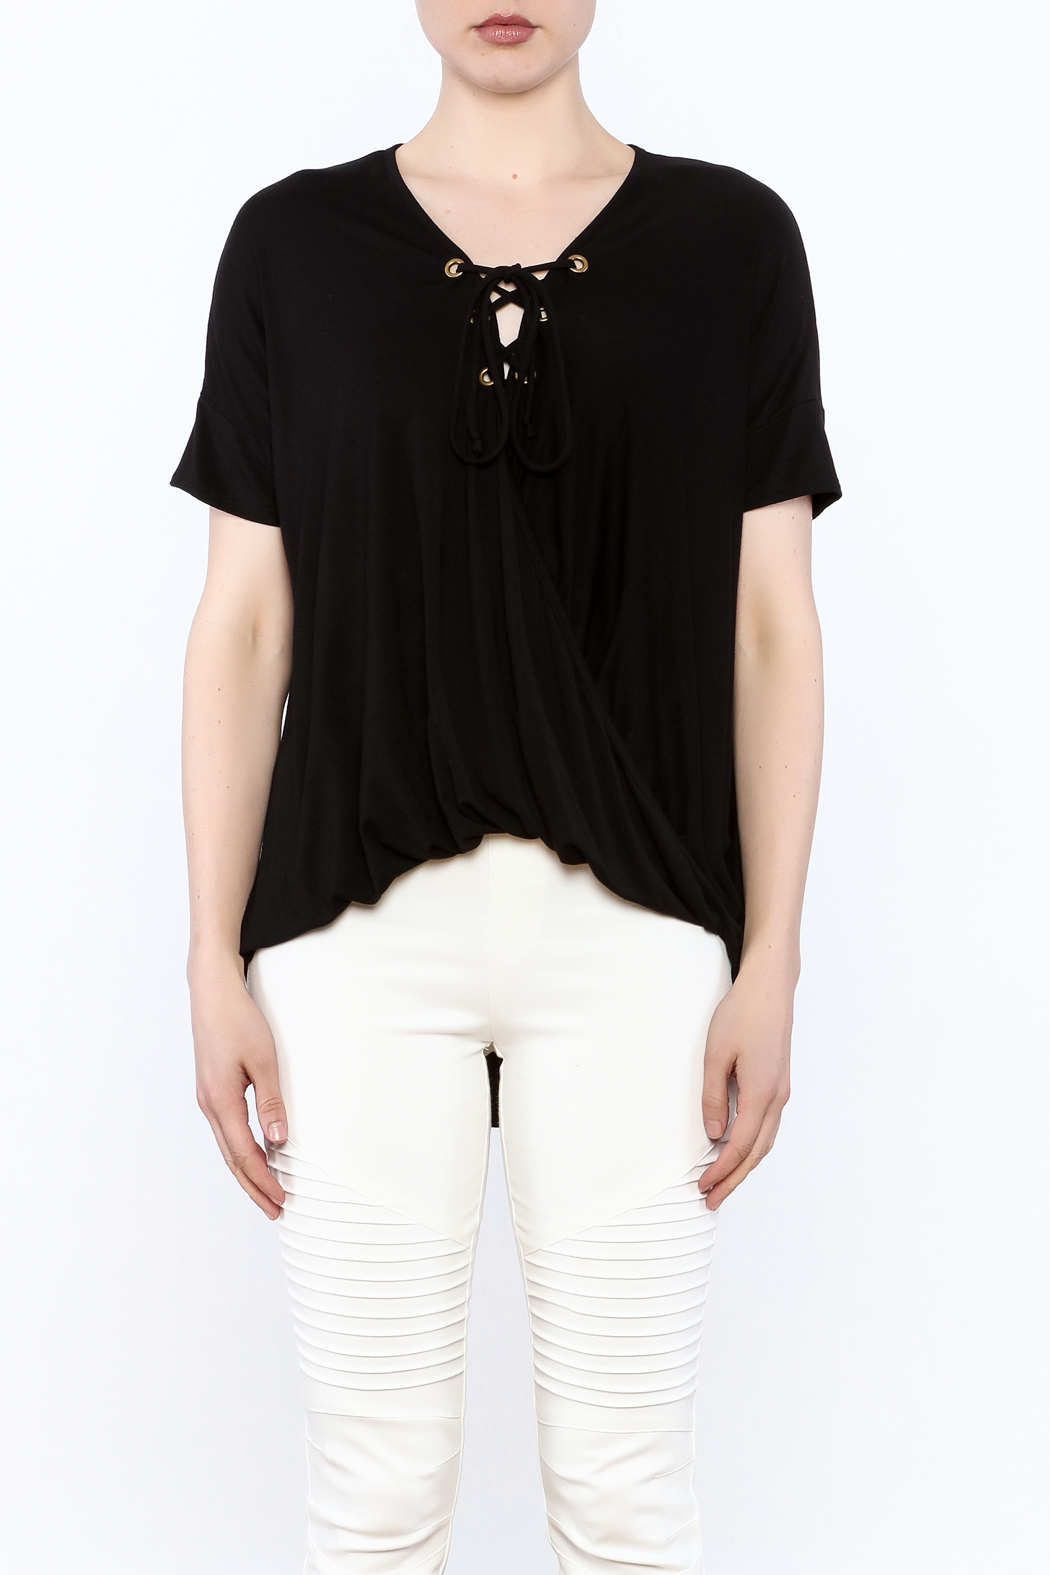 CY USA Lace Up Tee from Atlanta by GrayeStyle — Shoptiques